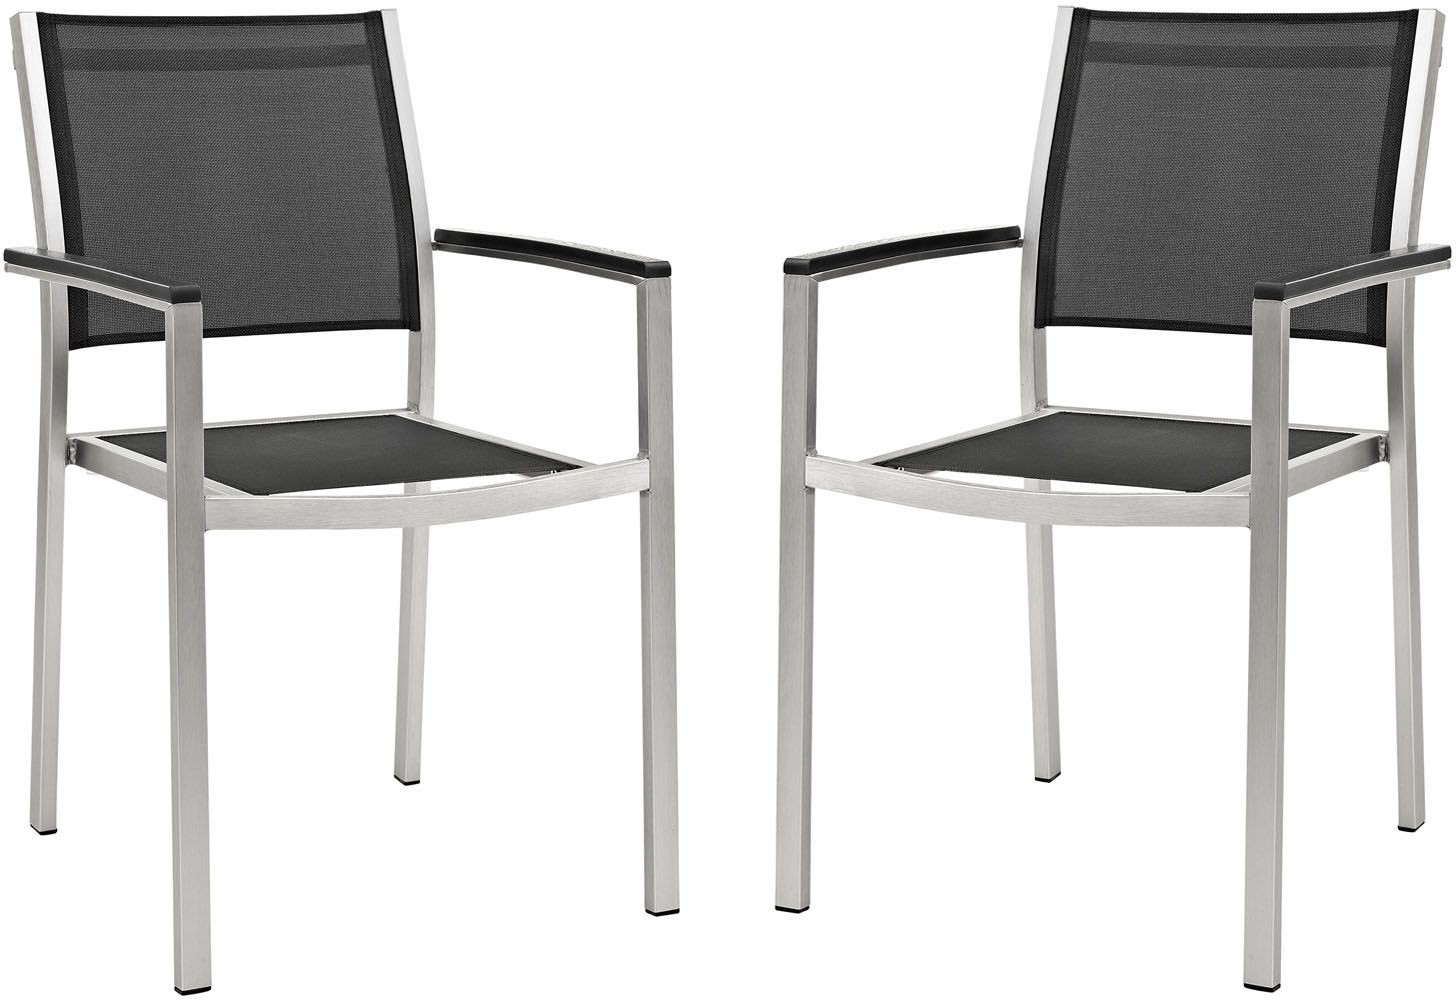 Black Metal Patio Chairs Shore Silver Black Aluminum Outdoor Patio Dining Chair Set